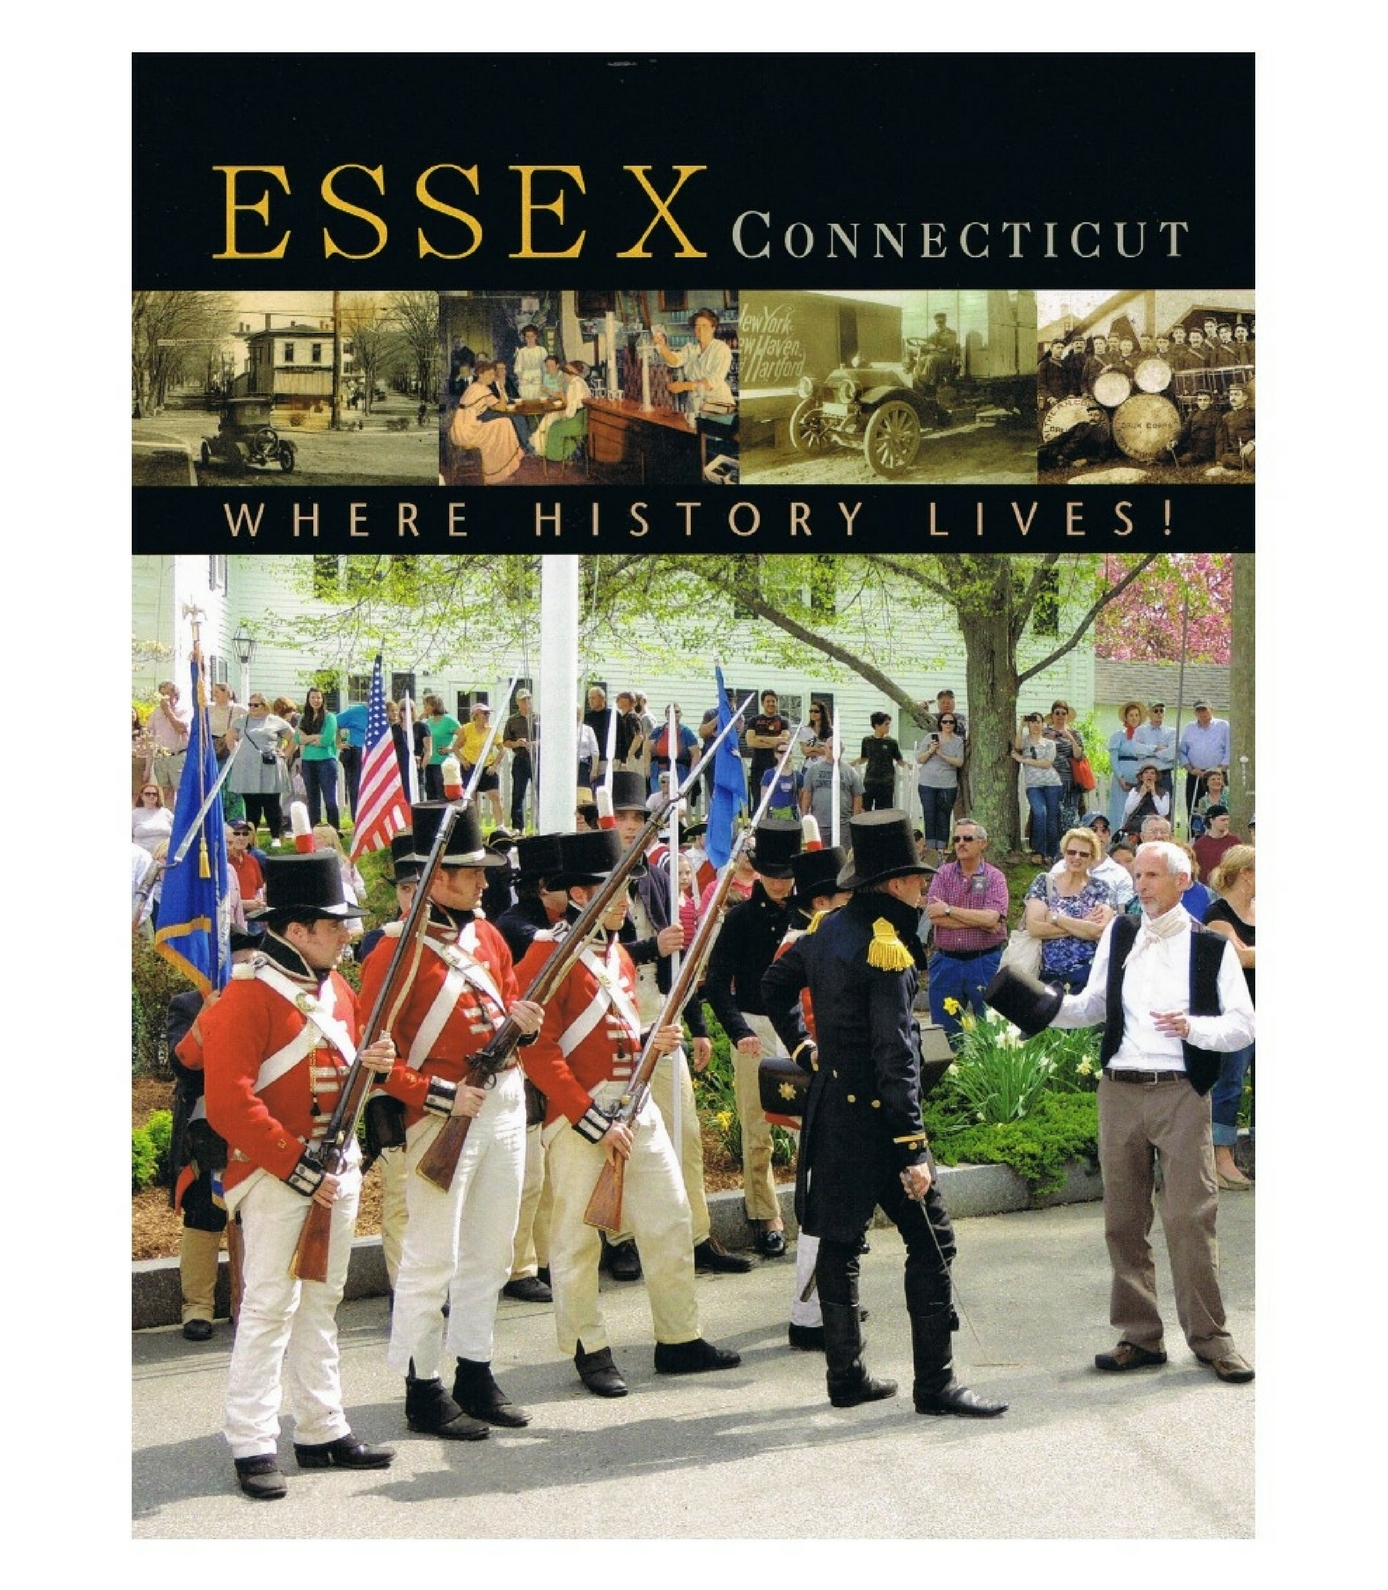 Essex, Connecticut: Where History Lives!